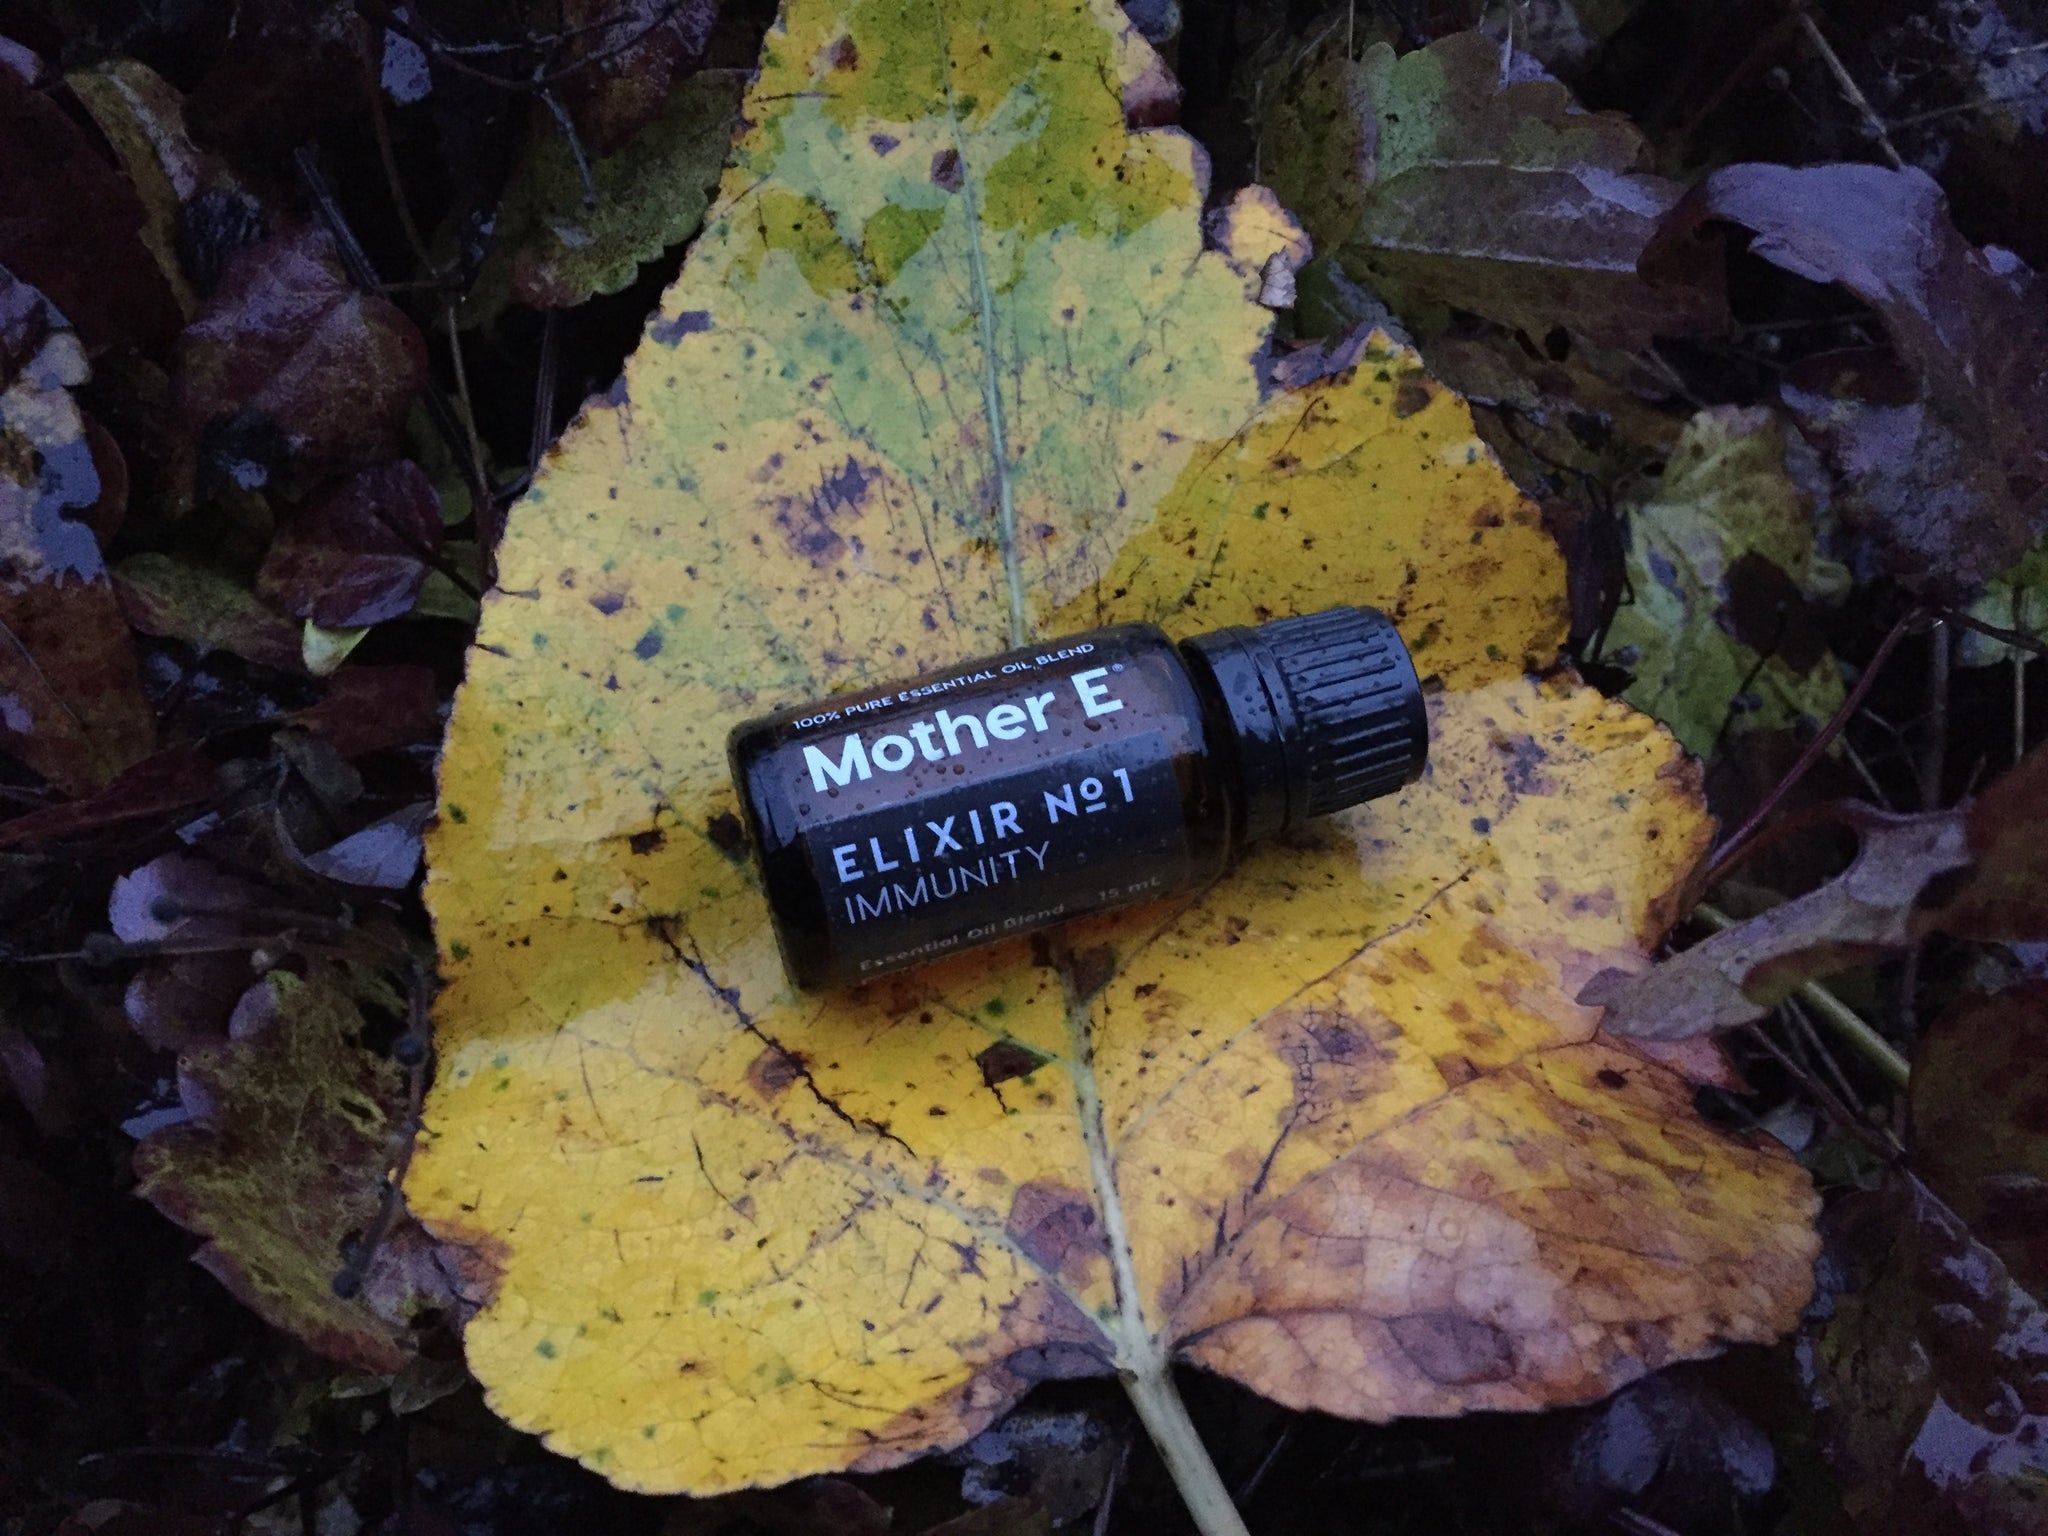 Elixir No 1 Immunity Essential Oil bottle on a yellow leaf on top of a pile of leaves